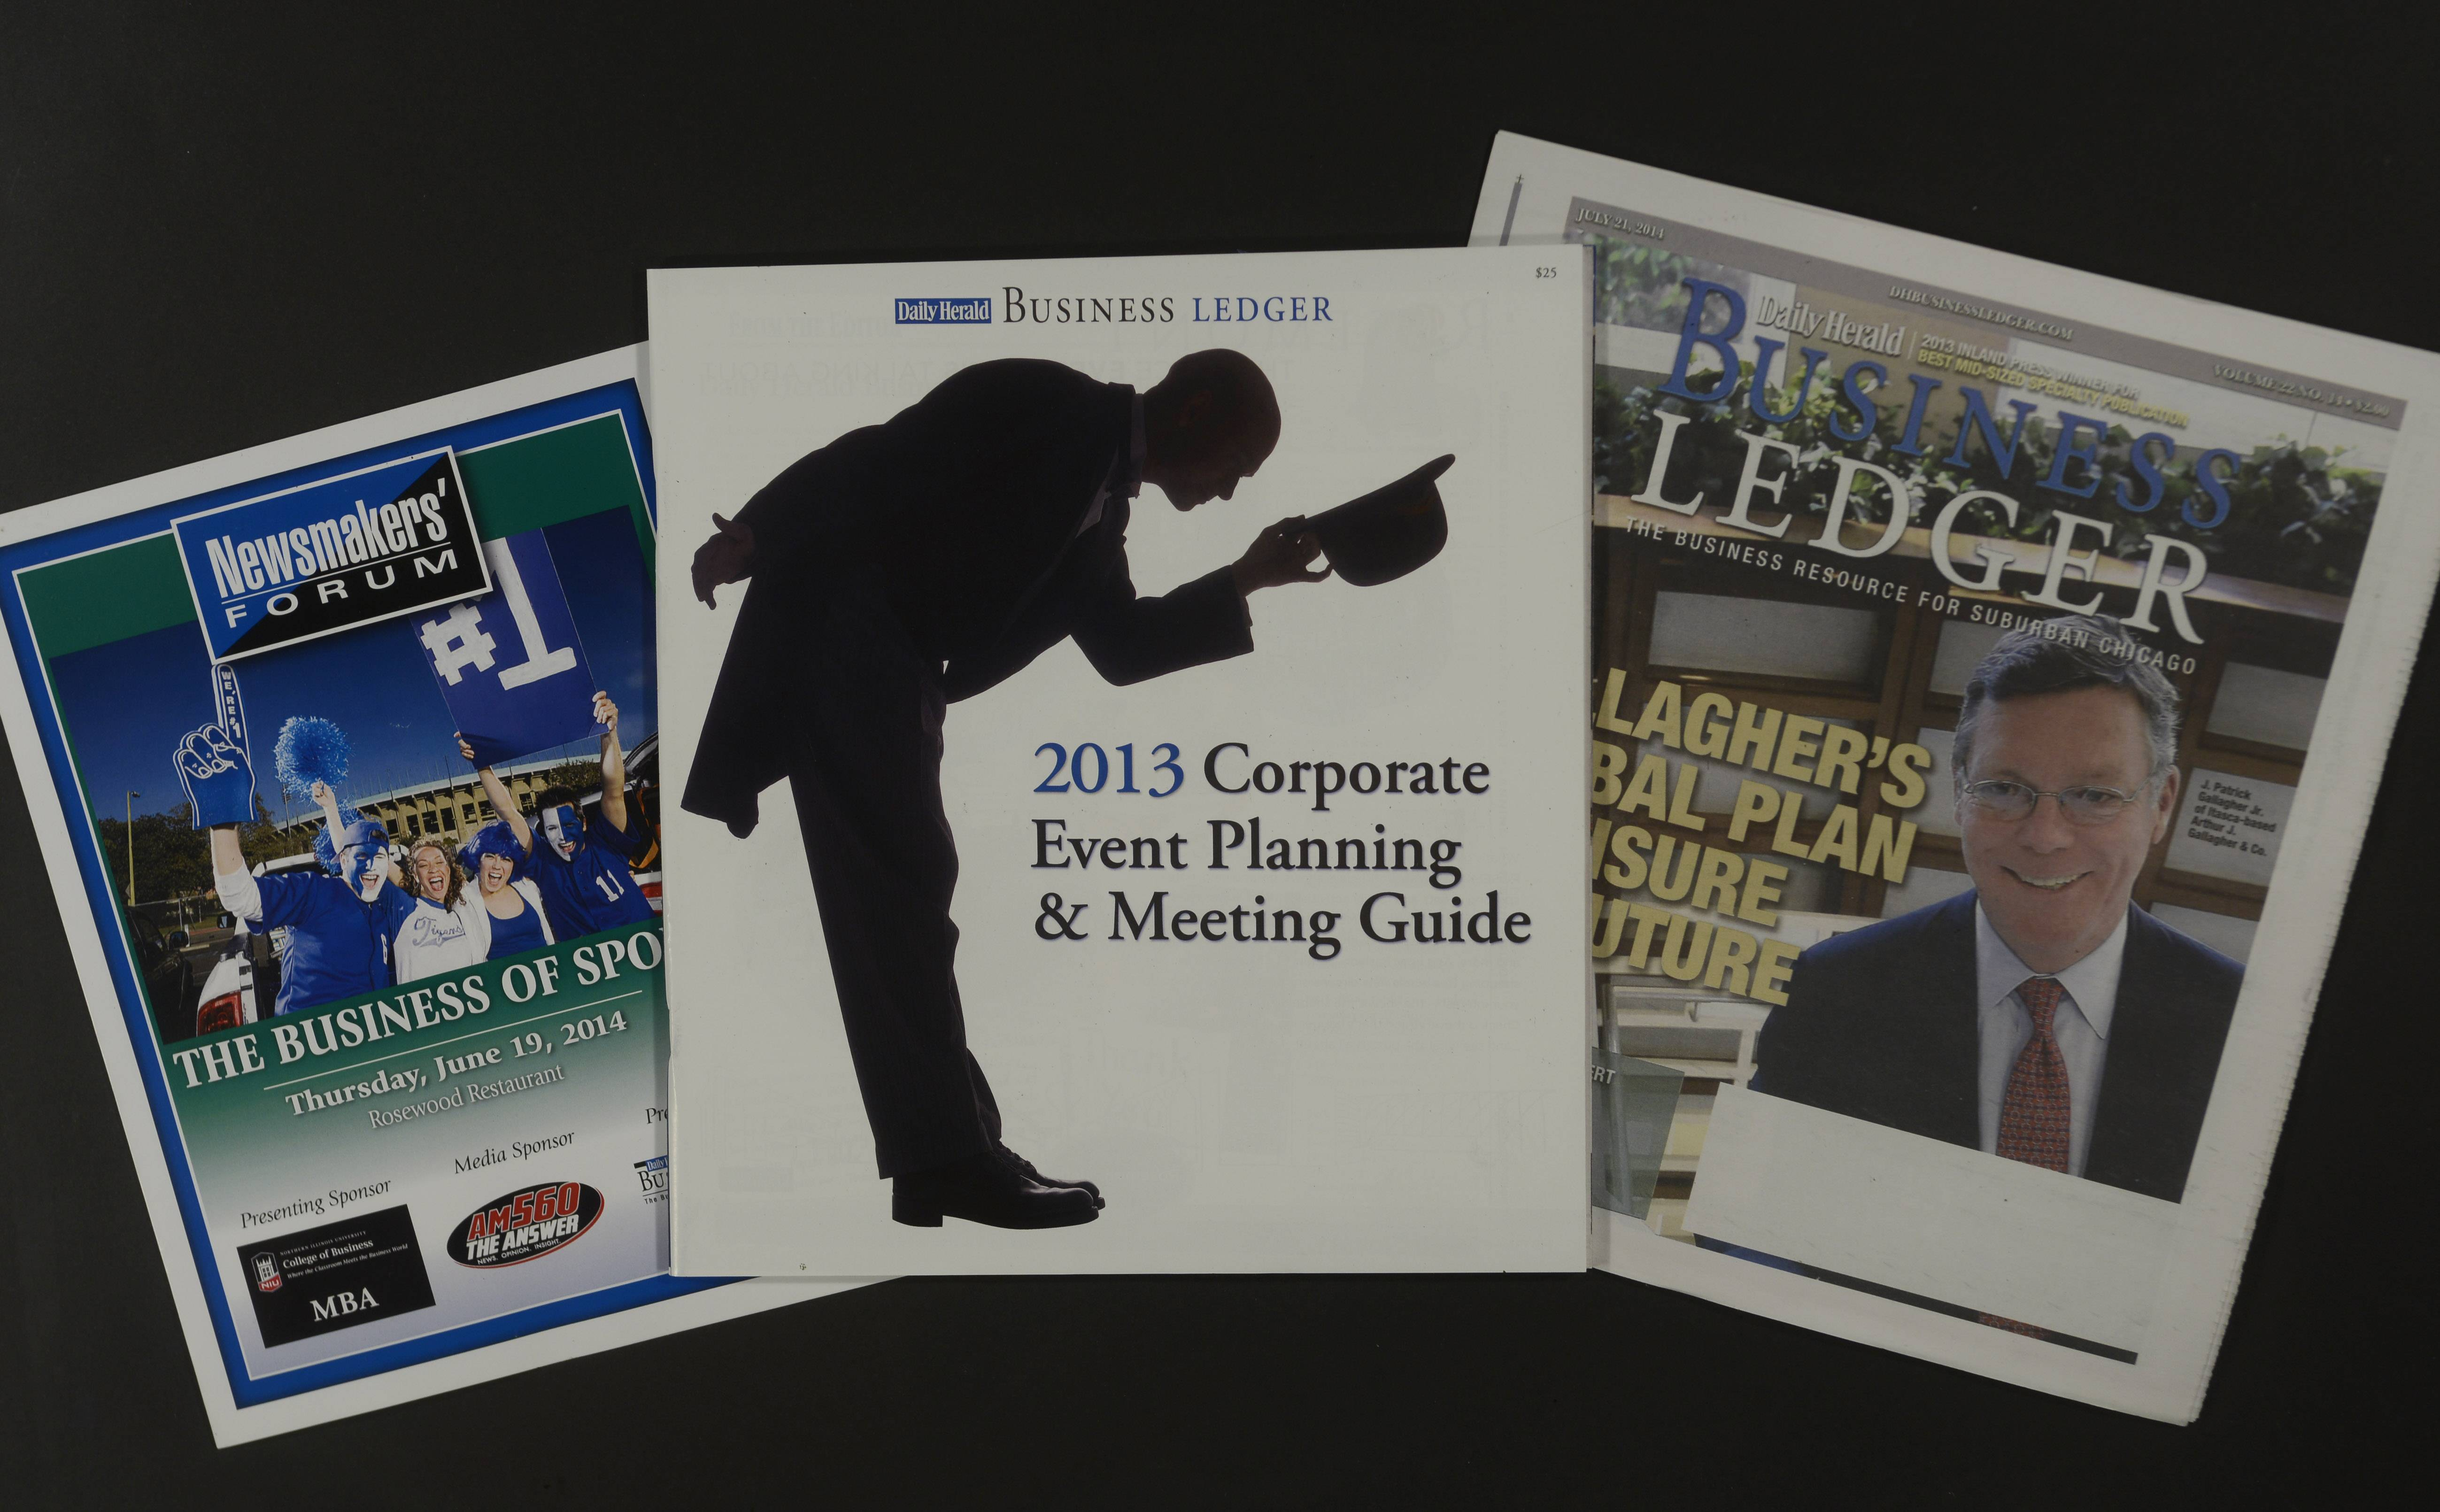 The 2013 Business Ledger Corporate Event Planning & Meeting Guide, center, was among the Daily Herald Business Ledger products and marketing events that were honored by the Inland Press Association in its annual New Business Development contest.